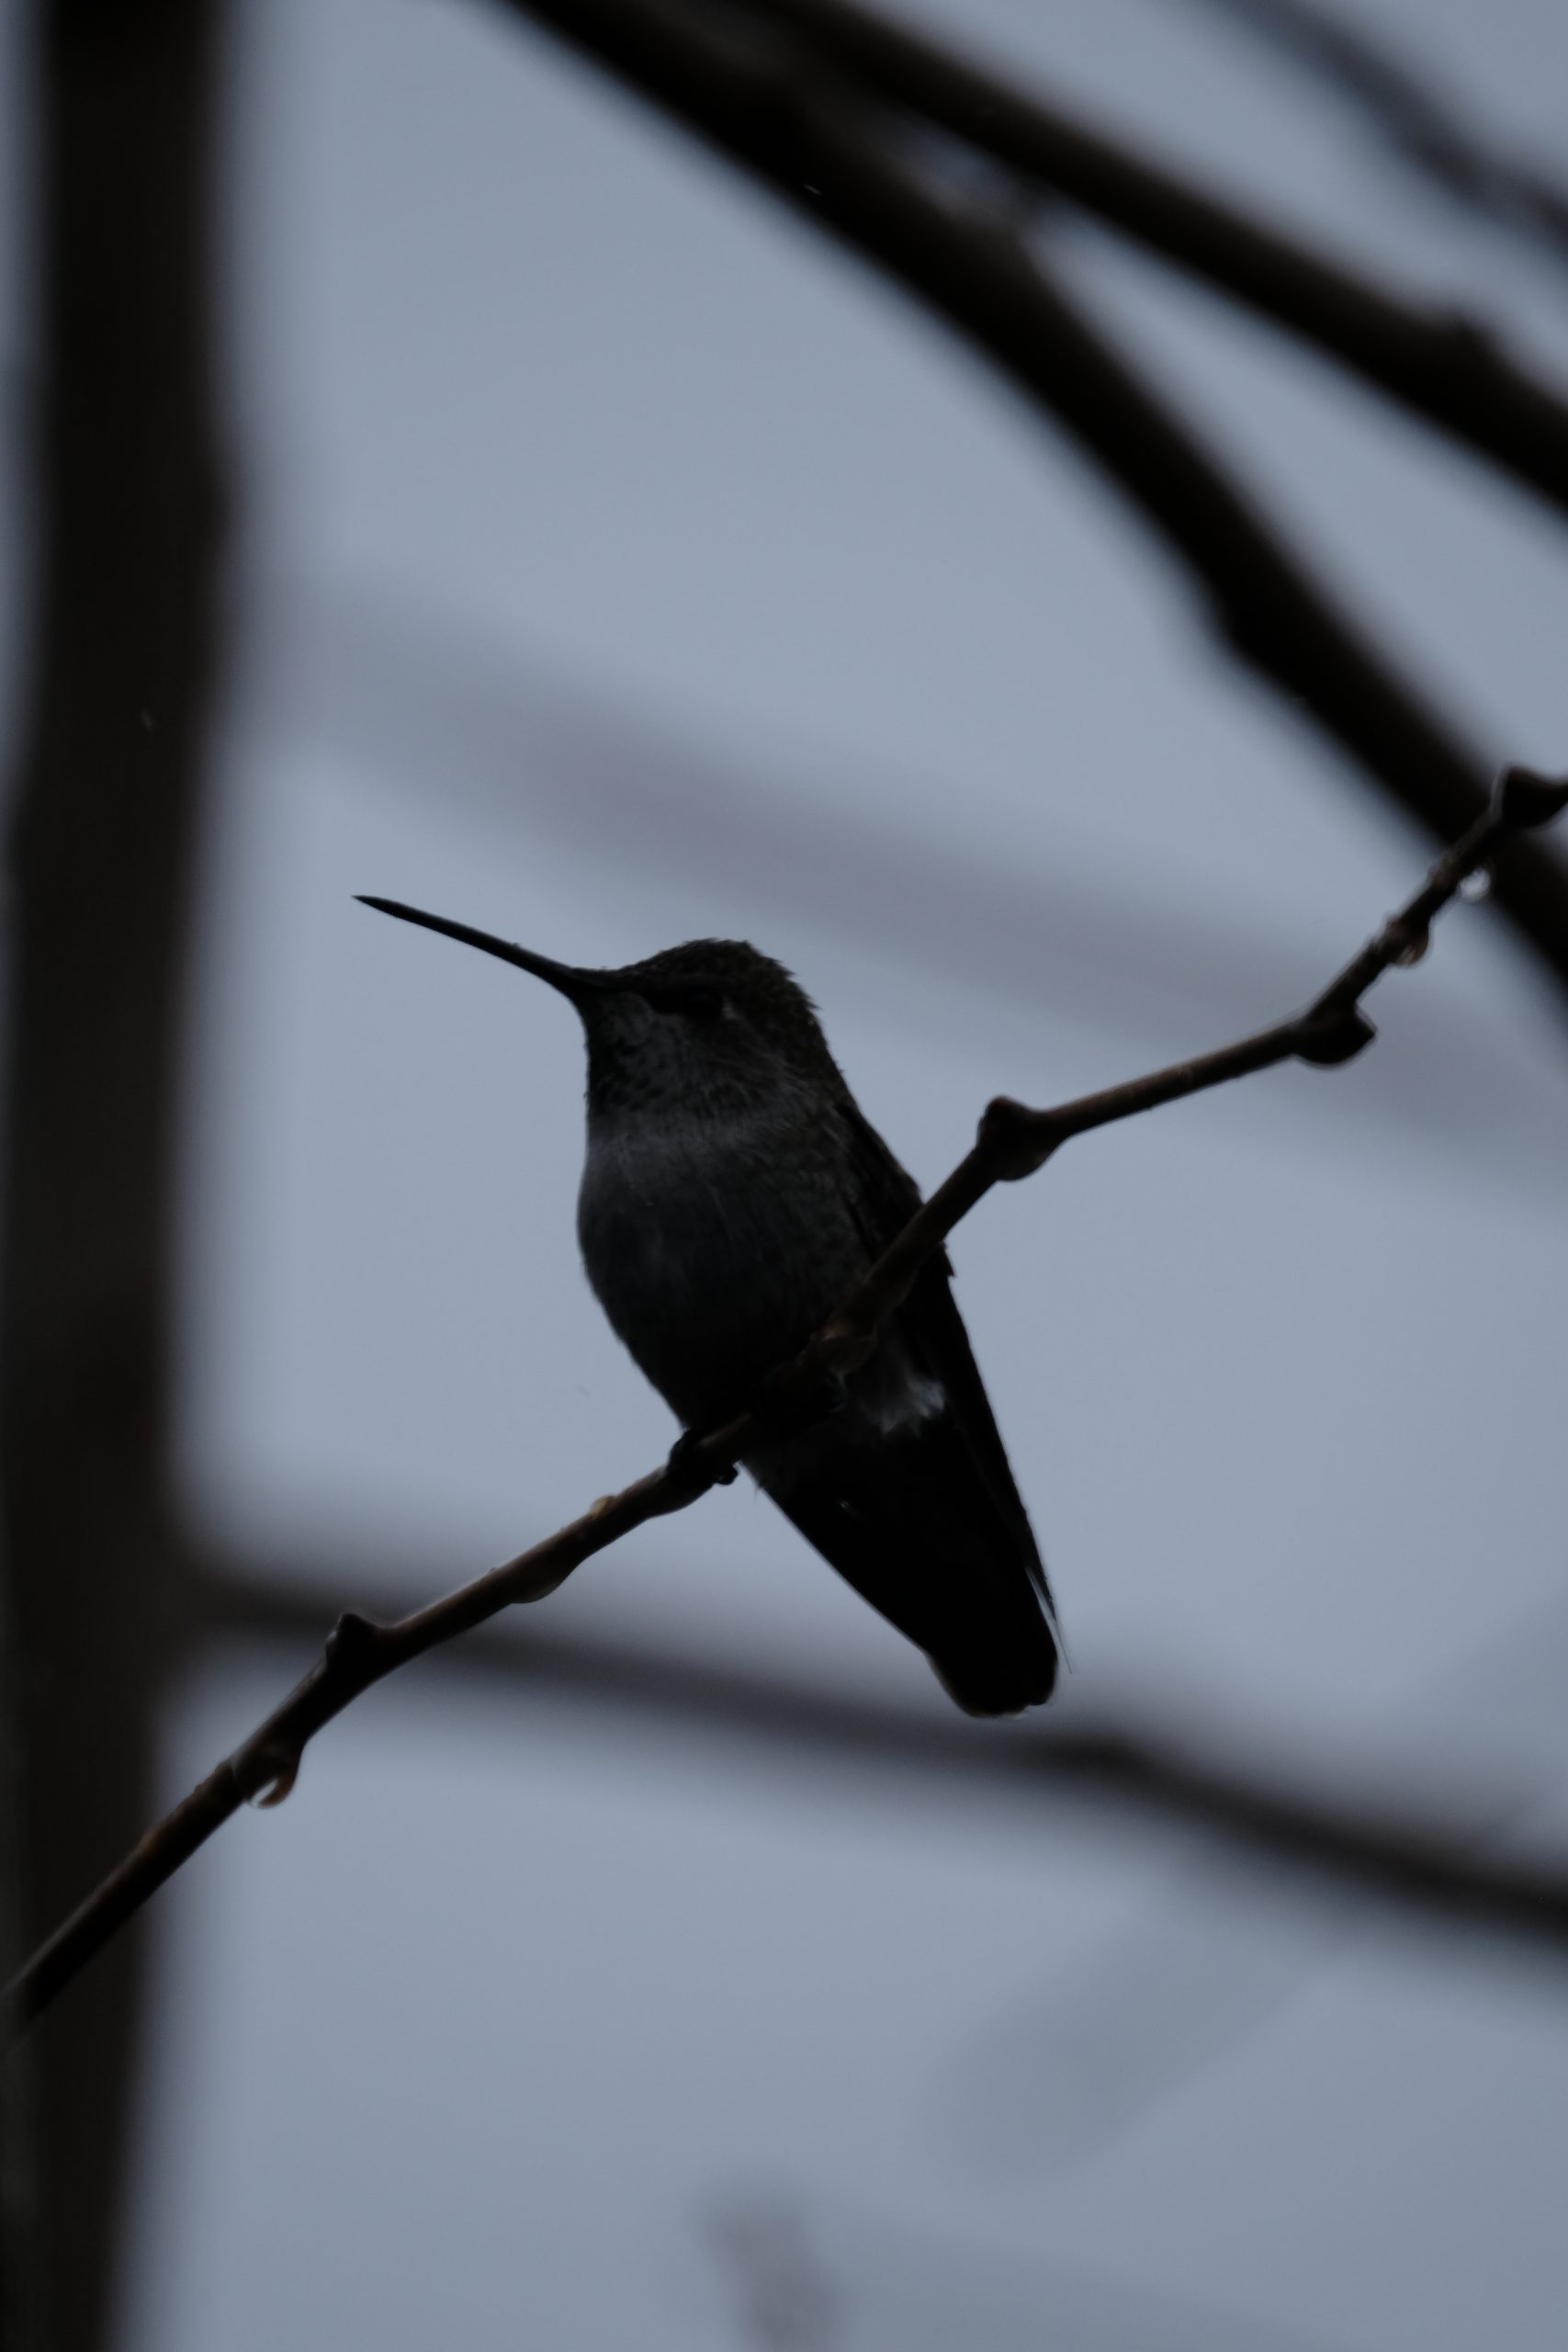 Hummingbird Silhouette 15 December 2020 Oregon Copyright Steve J Davis